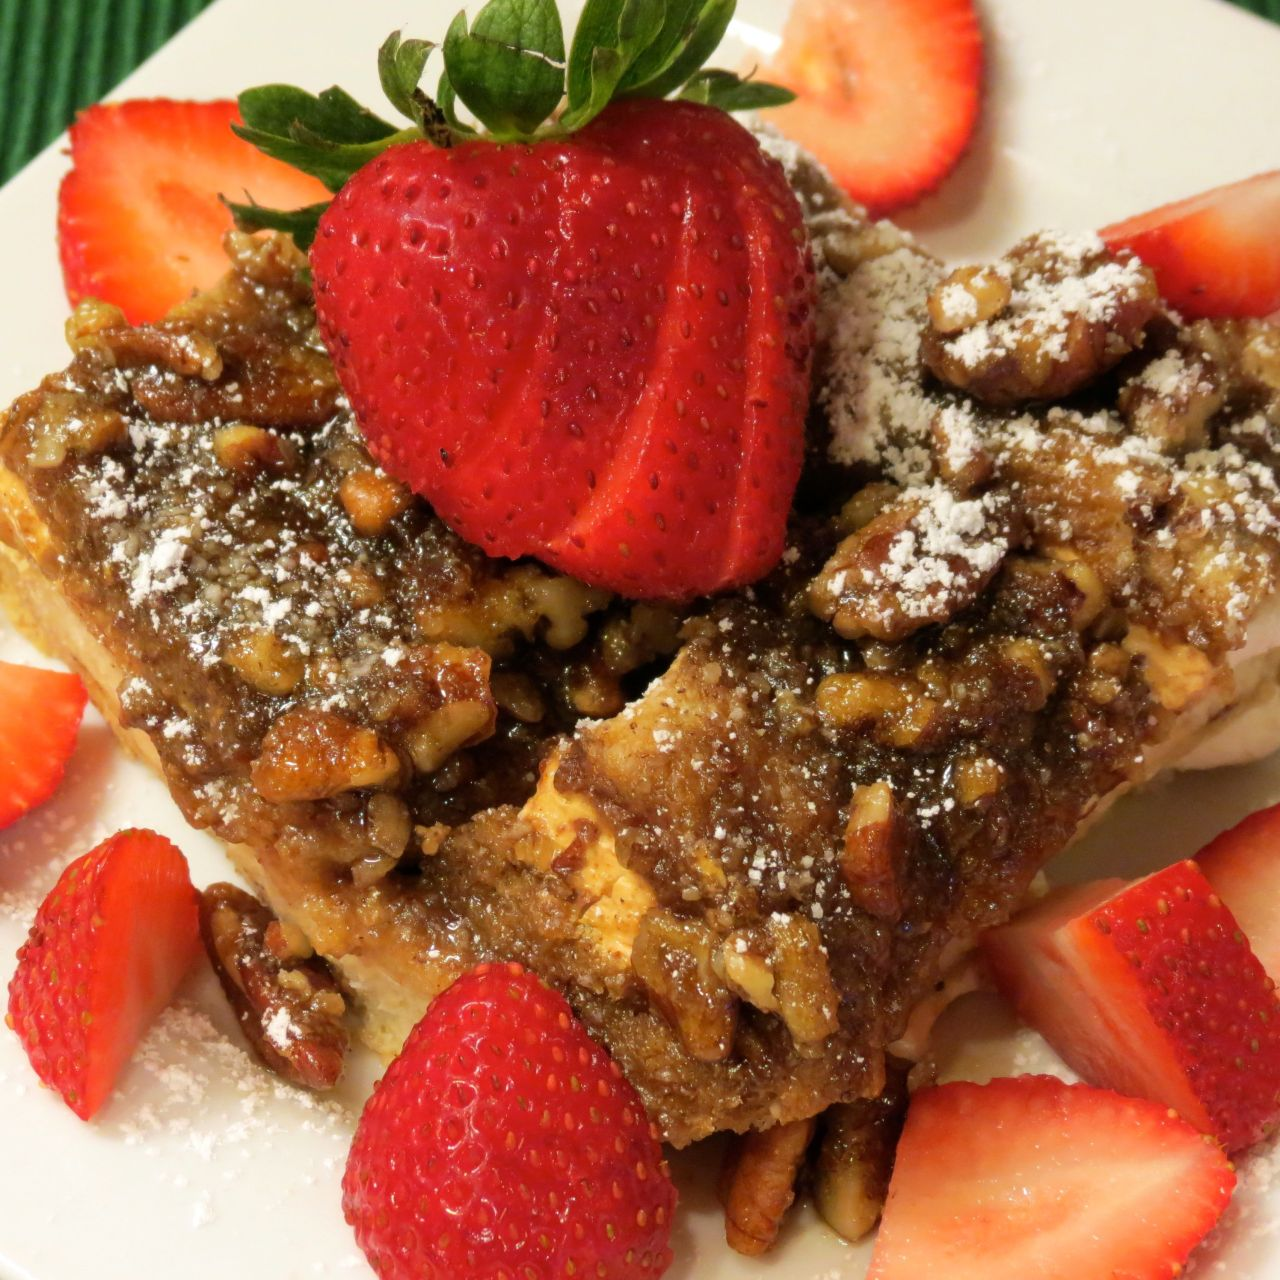 Christmas morning baked cinnamon french toast